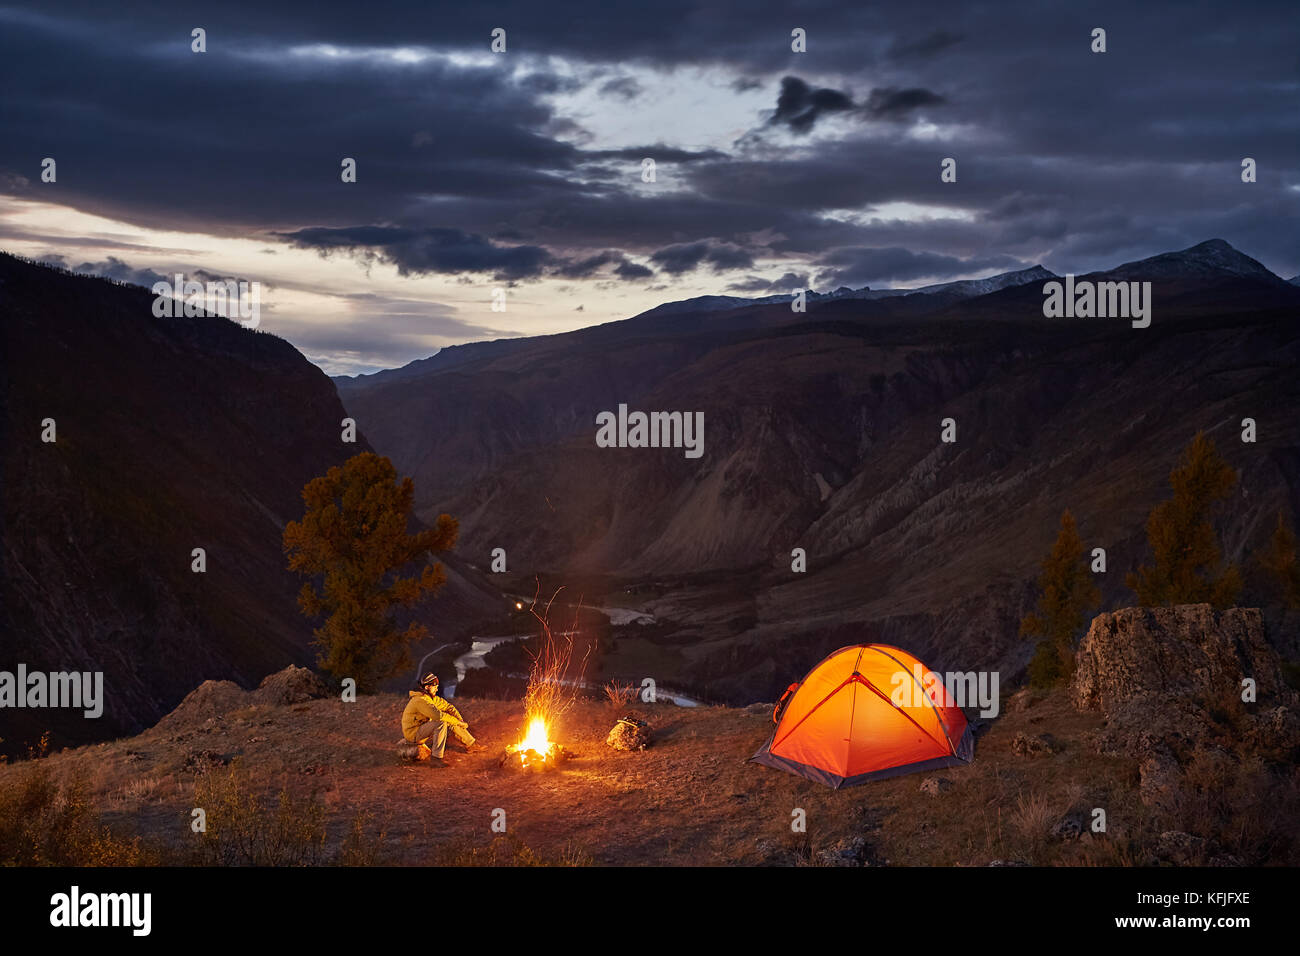 A man near illuminated tent and campfire in mountains in dawn - Stock Image